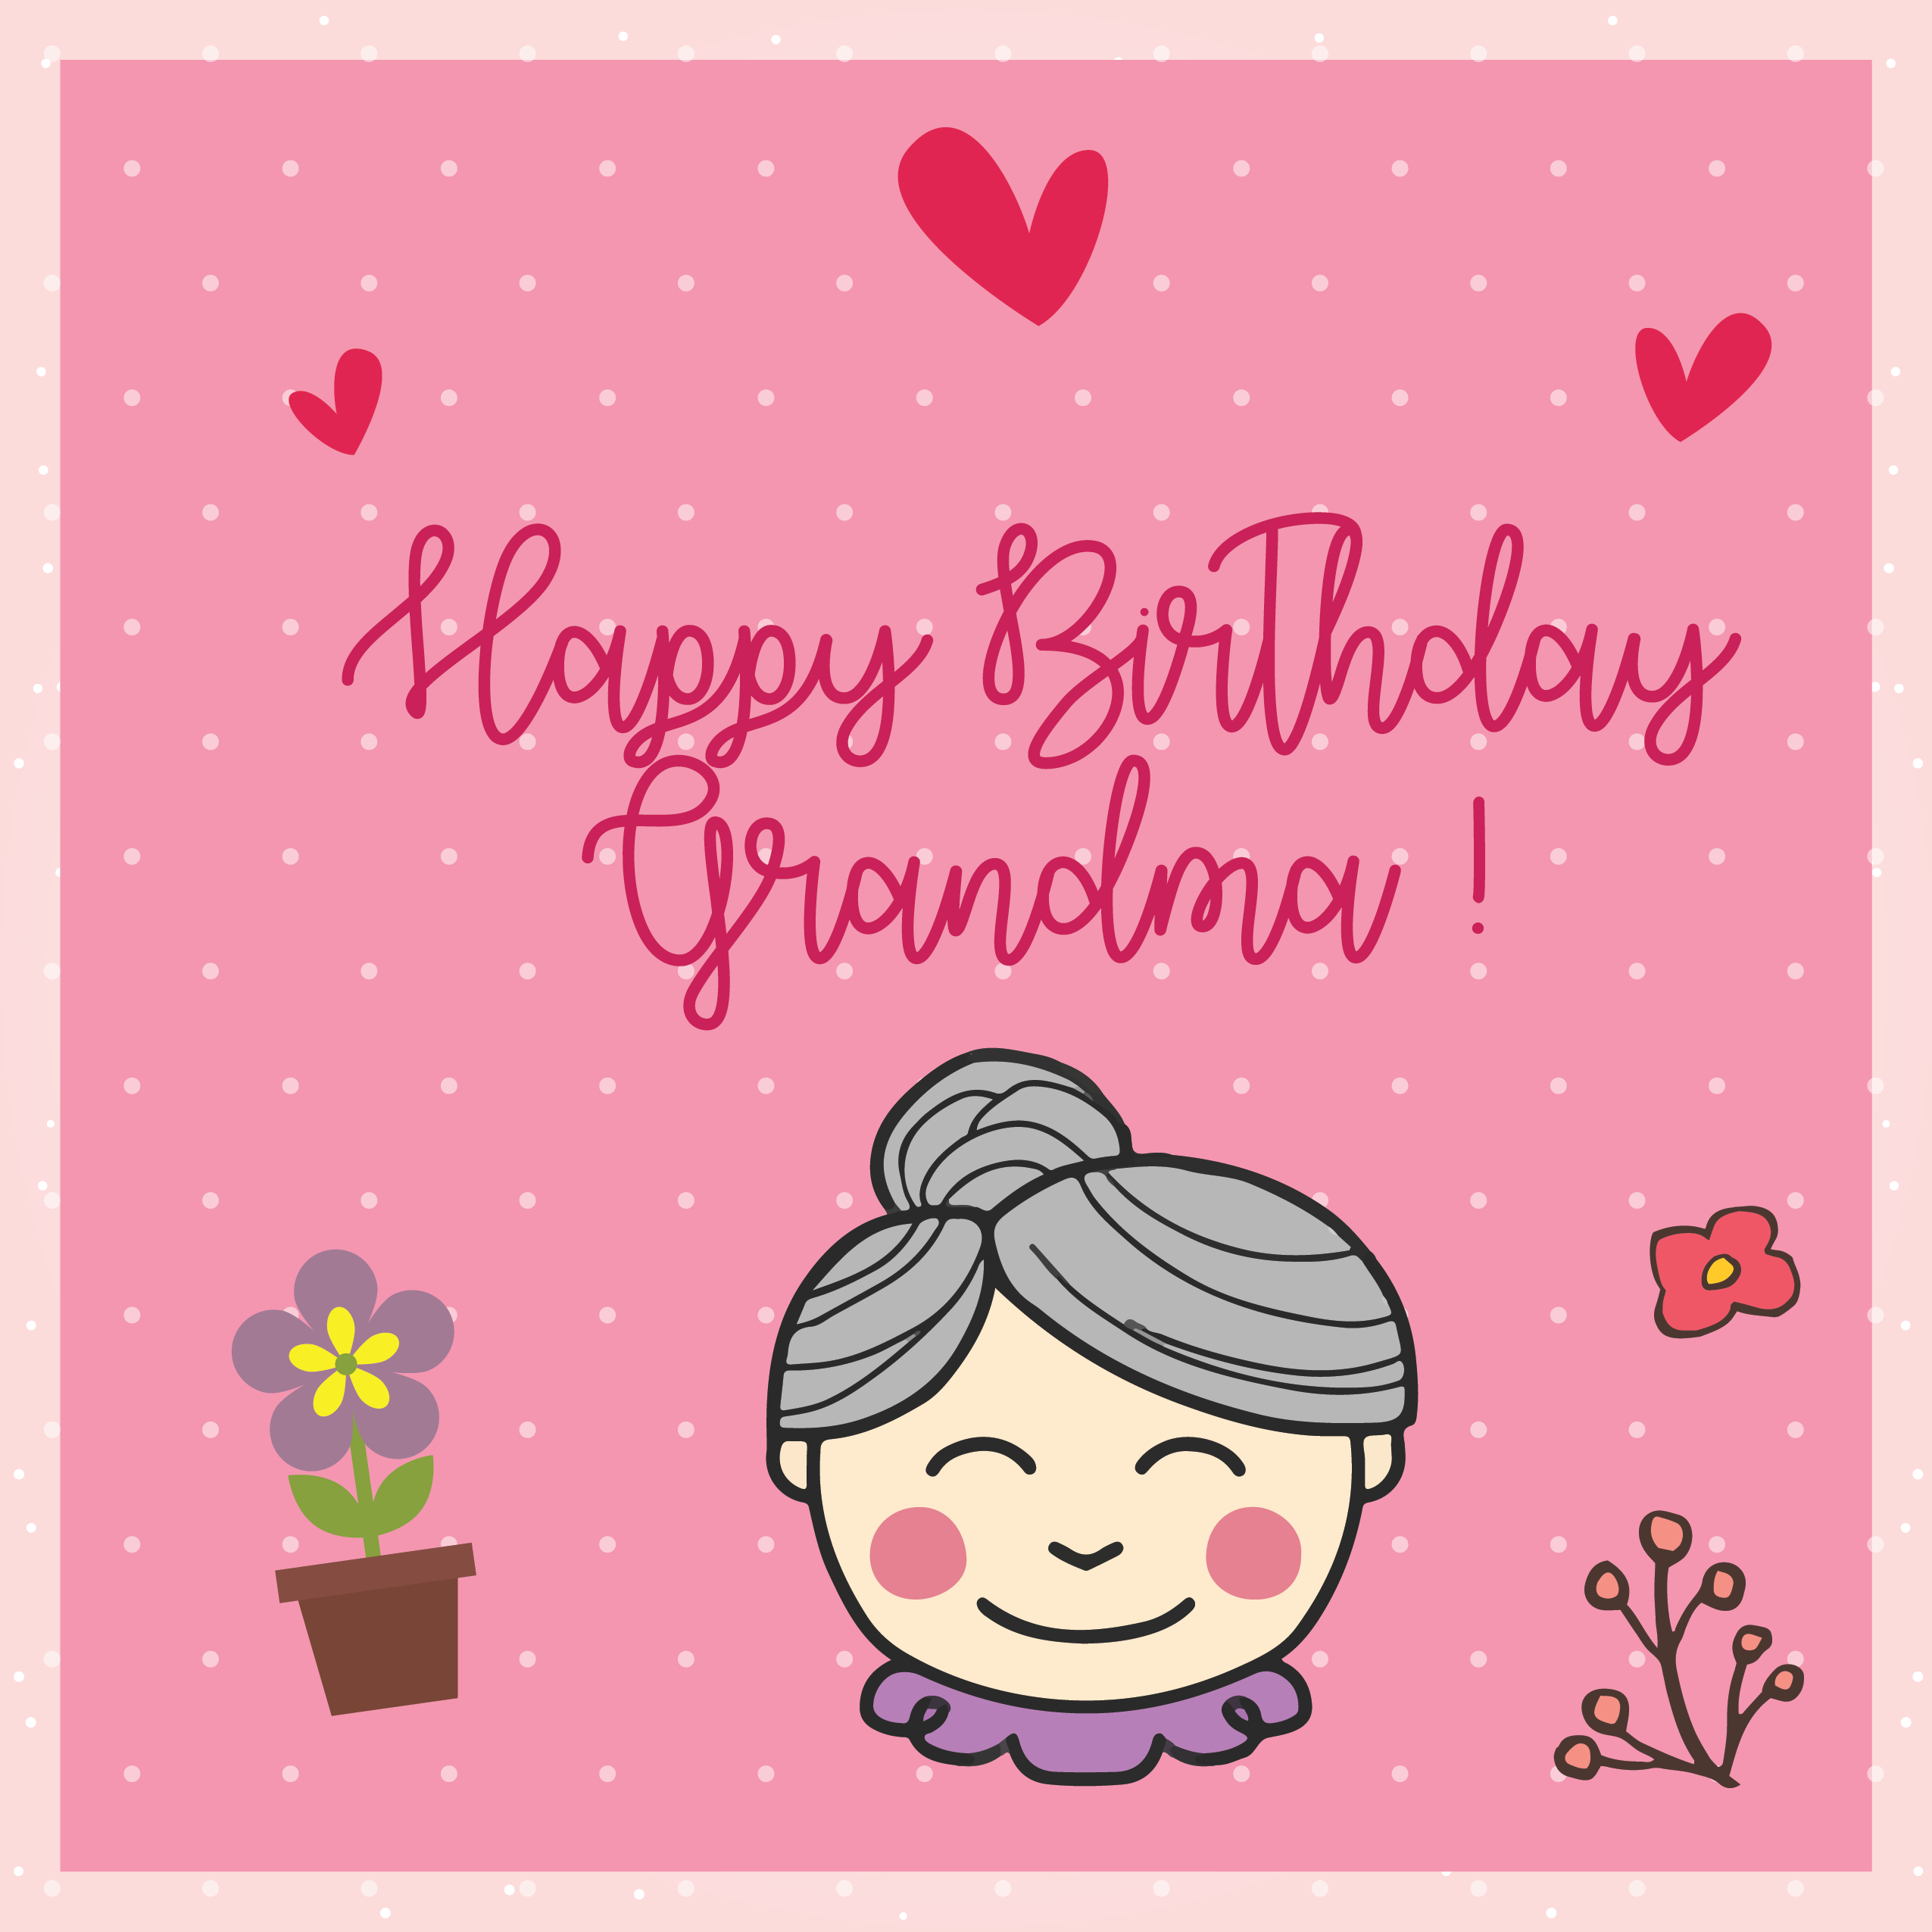 Happy-Birthday-Wishes-Grandma3